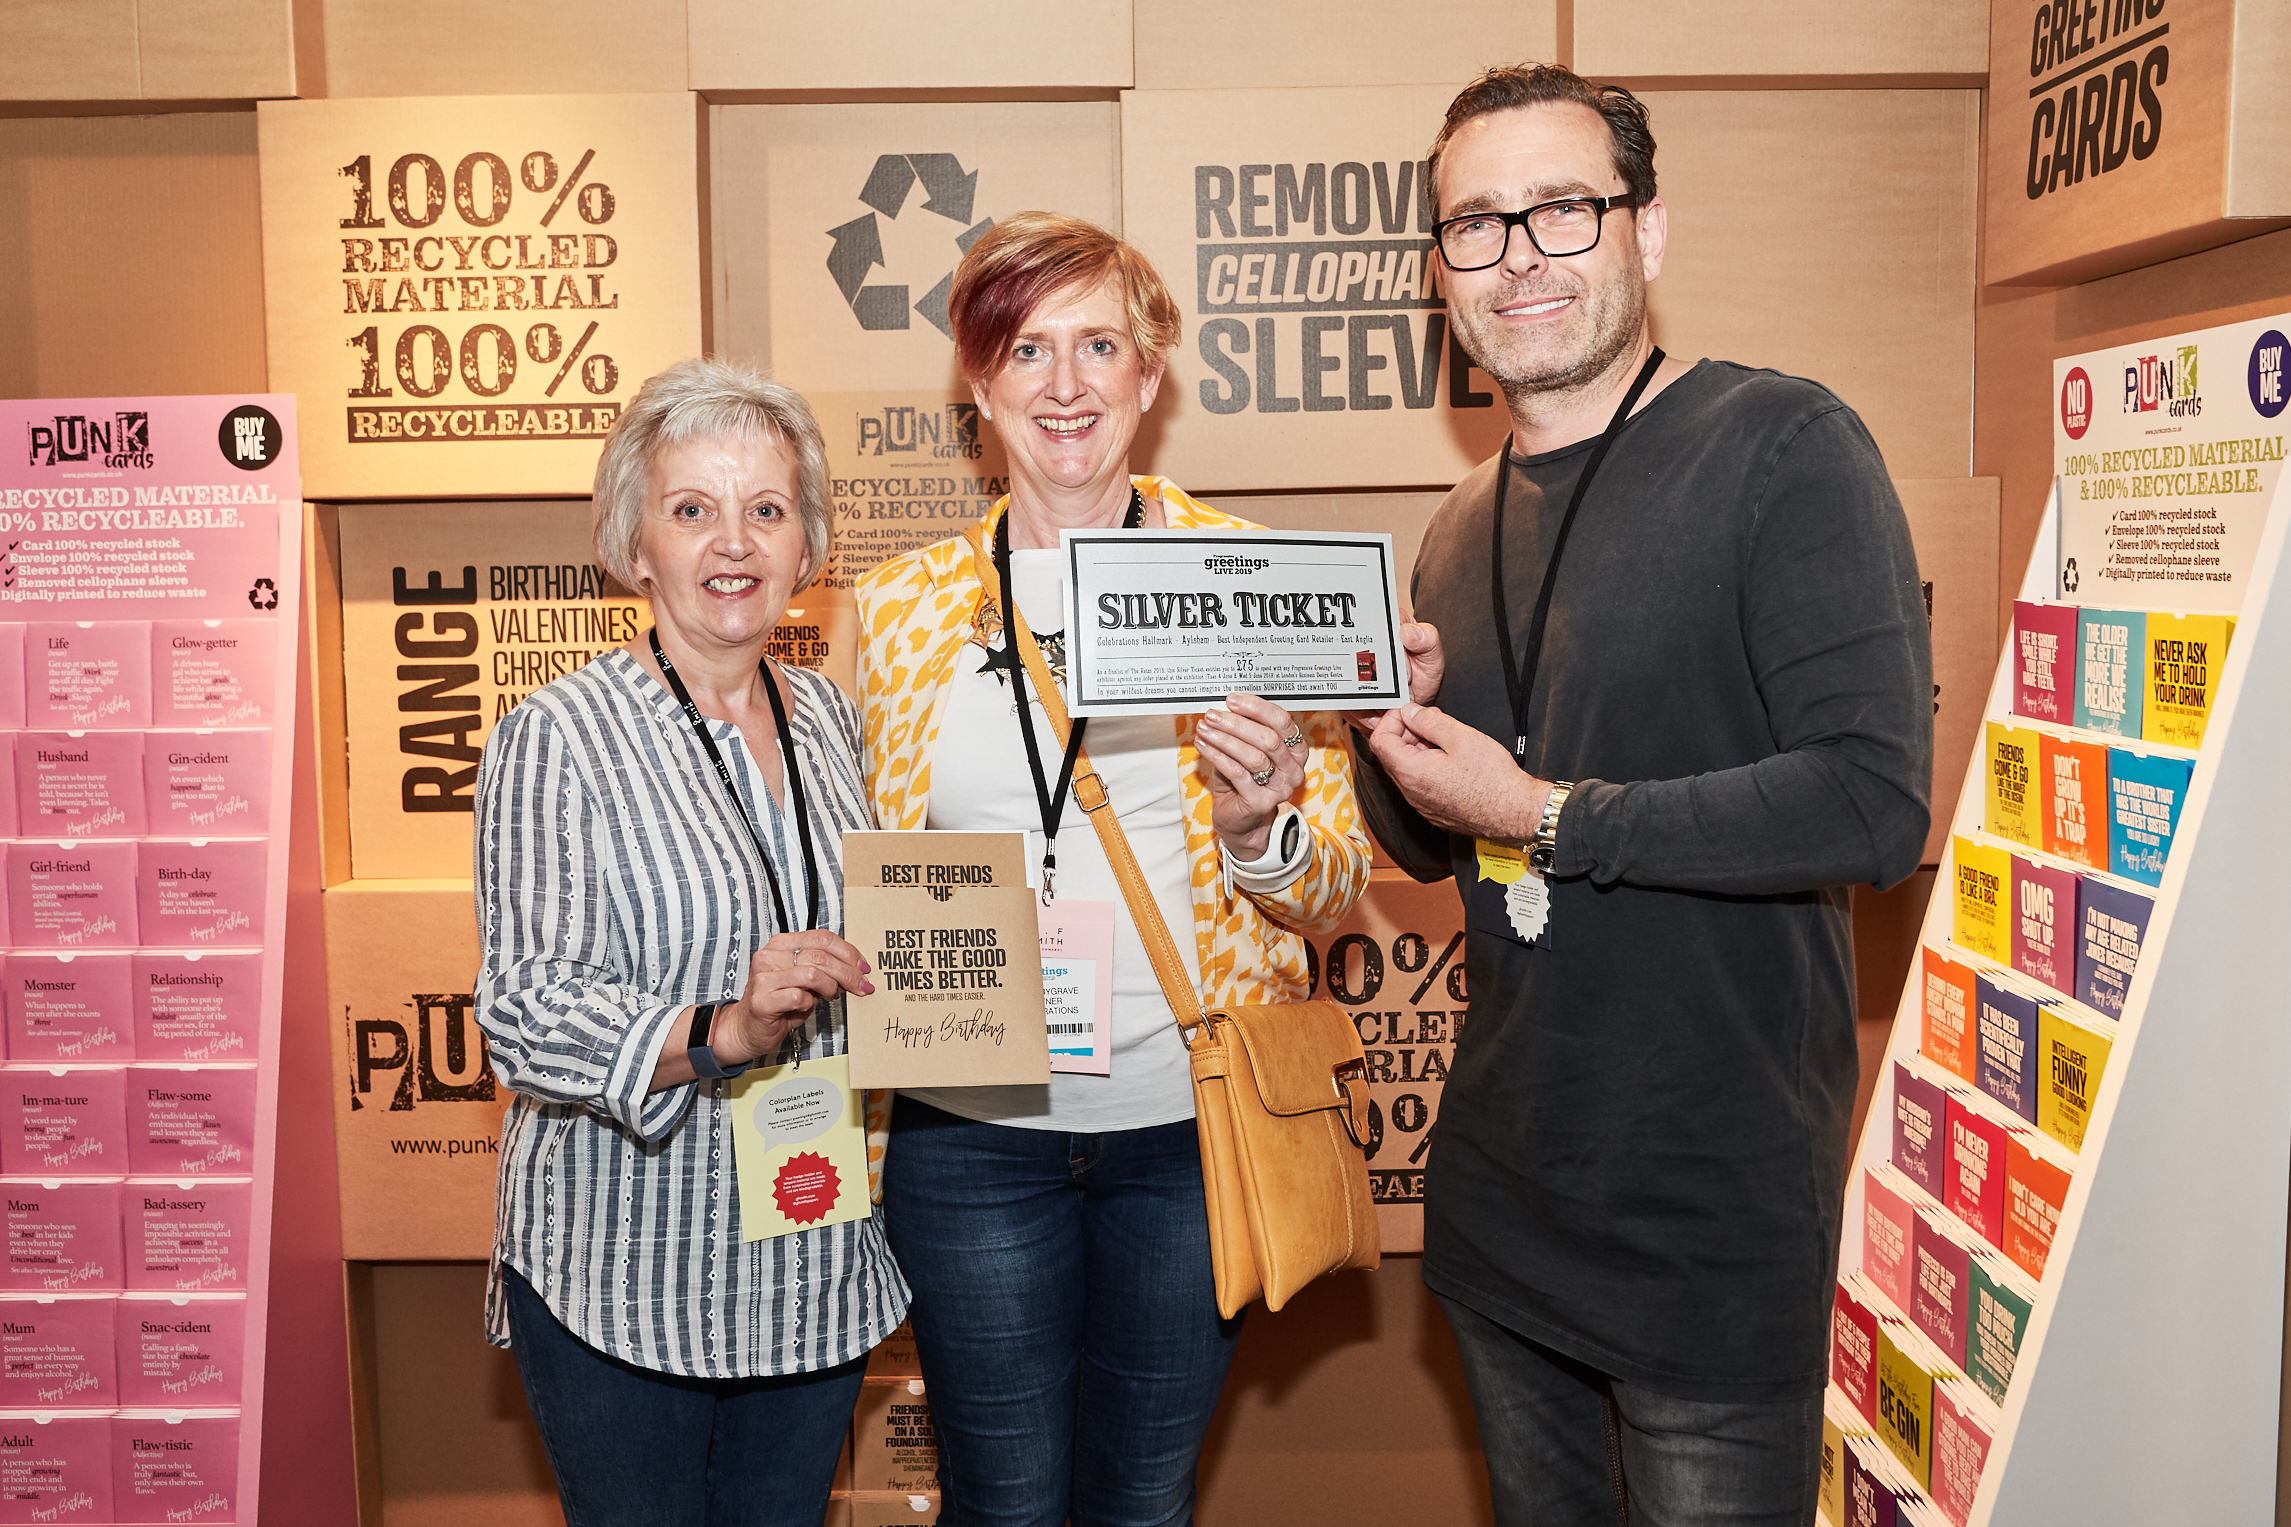 Above: Celebrations' Lynda Bygrave (centre) with colleague Mandy Baker on the Punk Cards' stand with owner David Nicholas, which made great stand about its environmental credentials.